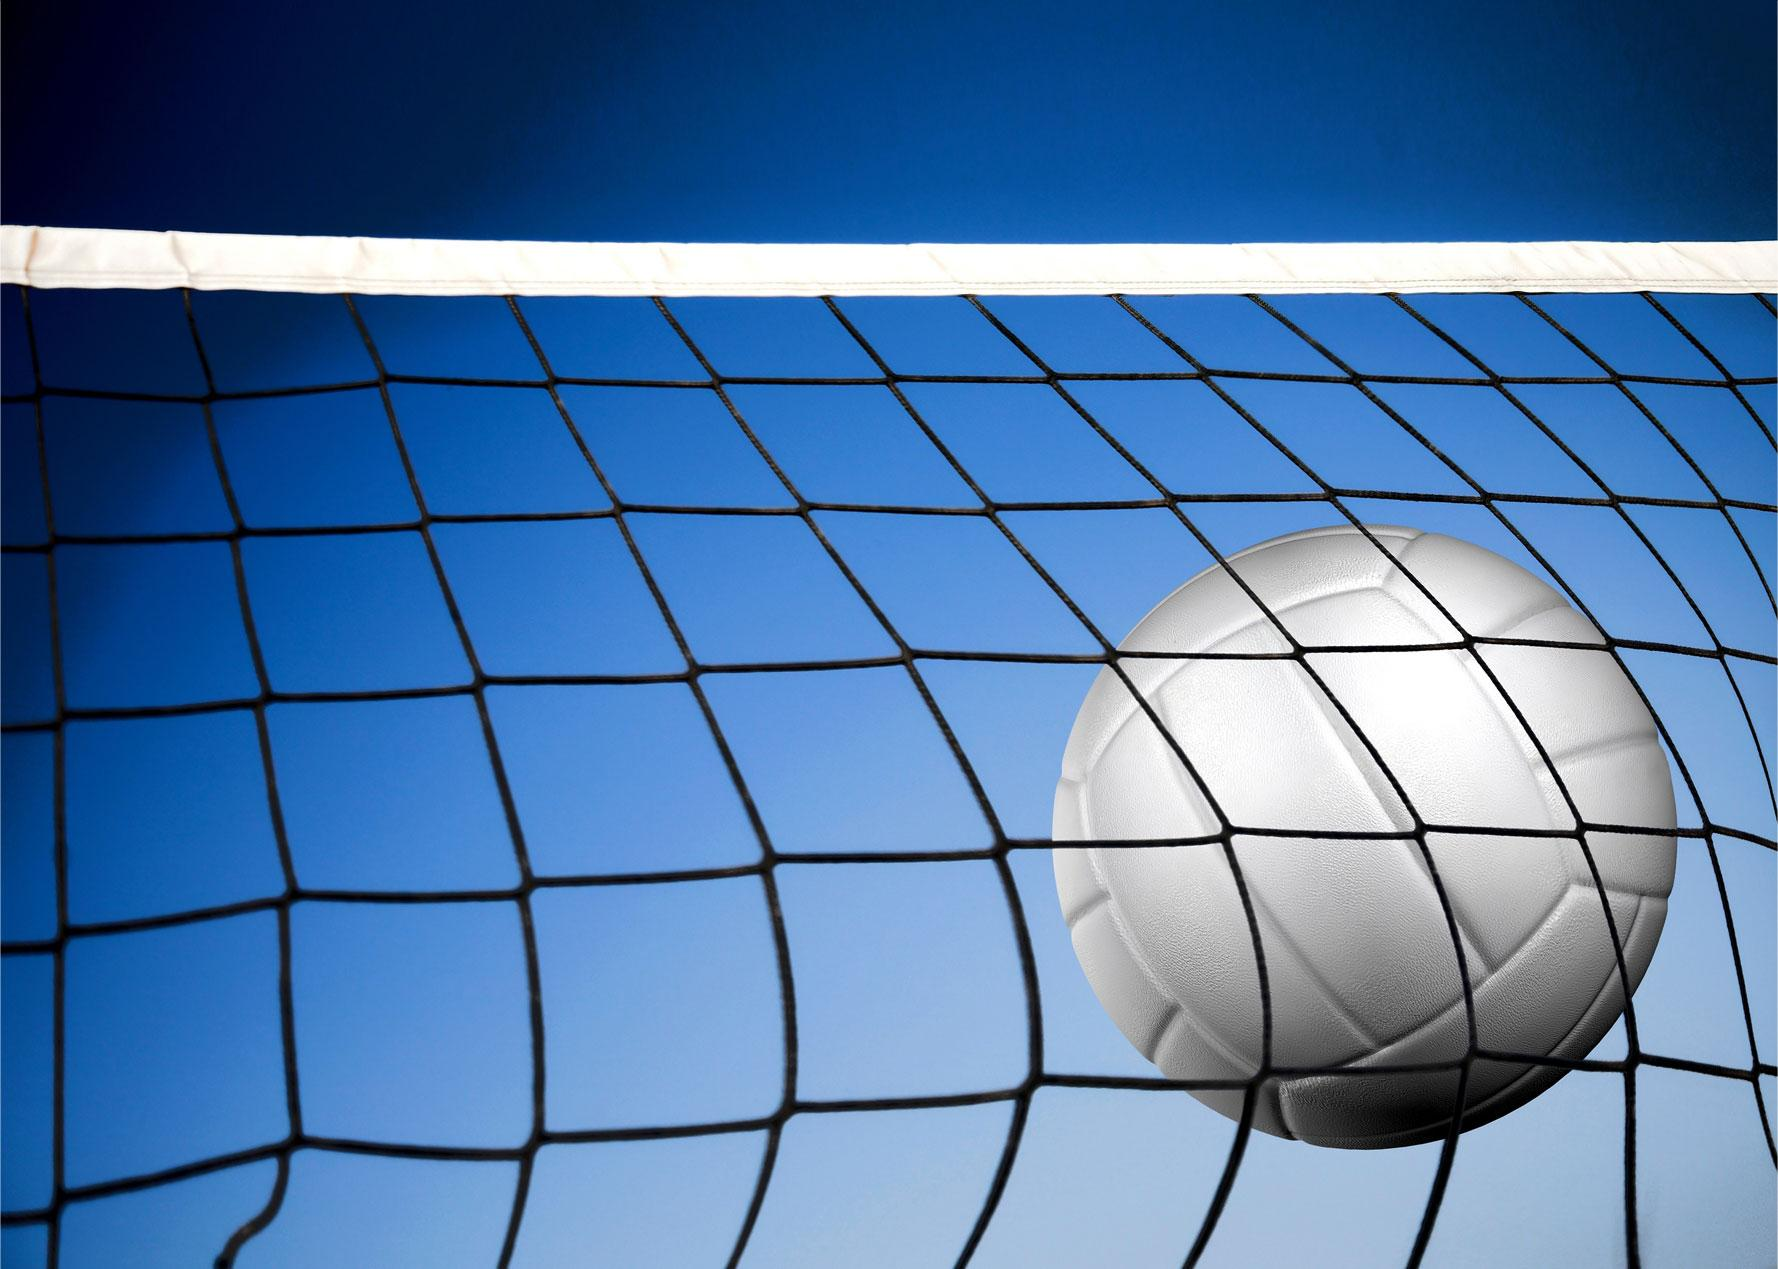 The girls' volleyball team swept Connellsville in the first round of the playoffs.